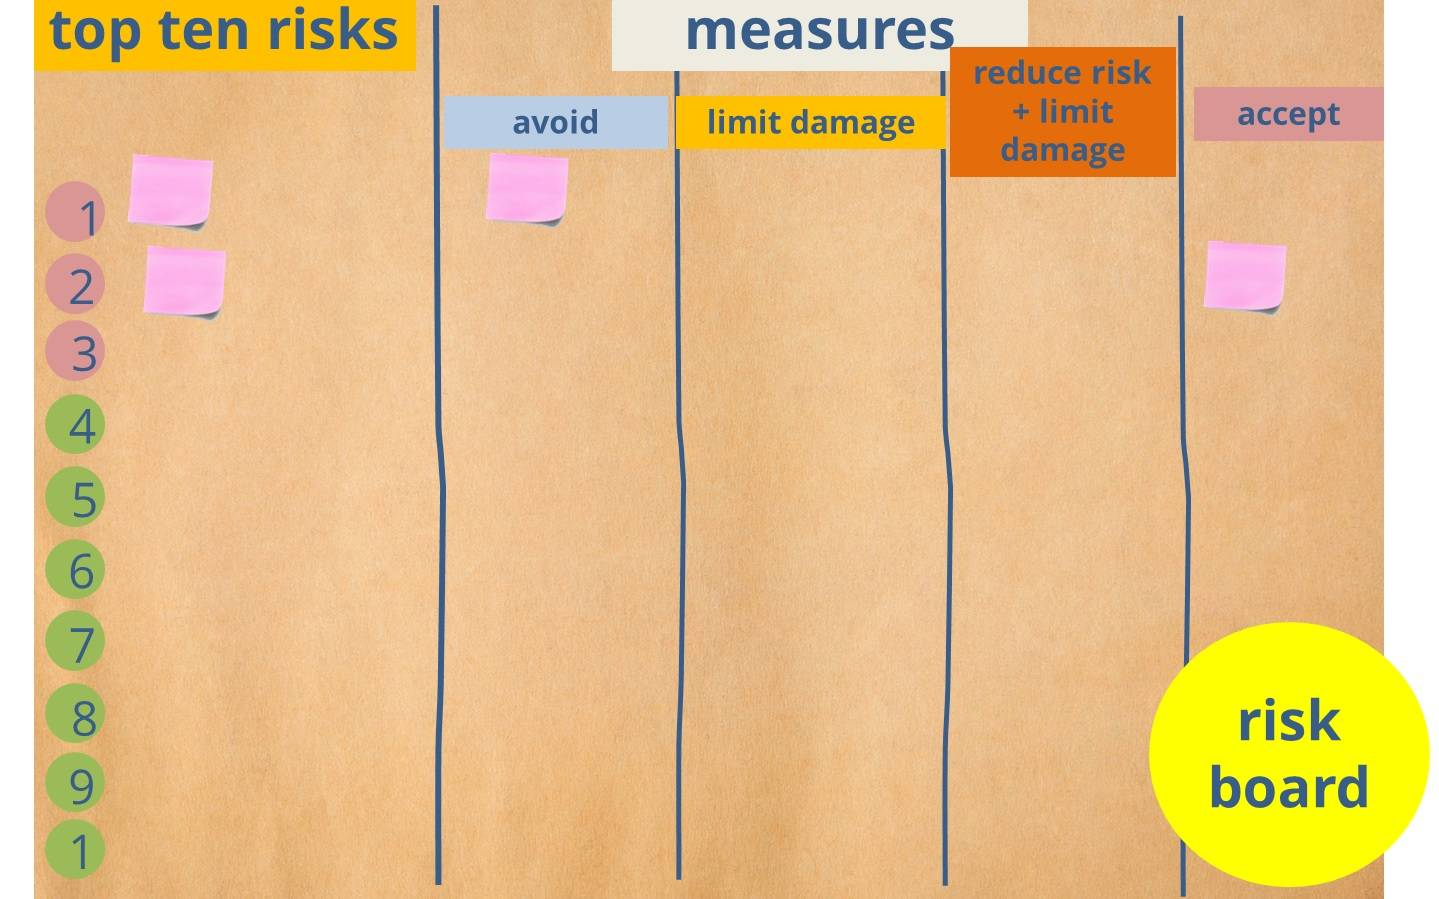 Risk board as communication method